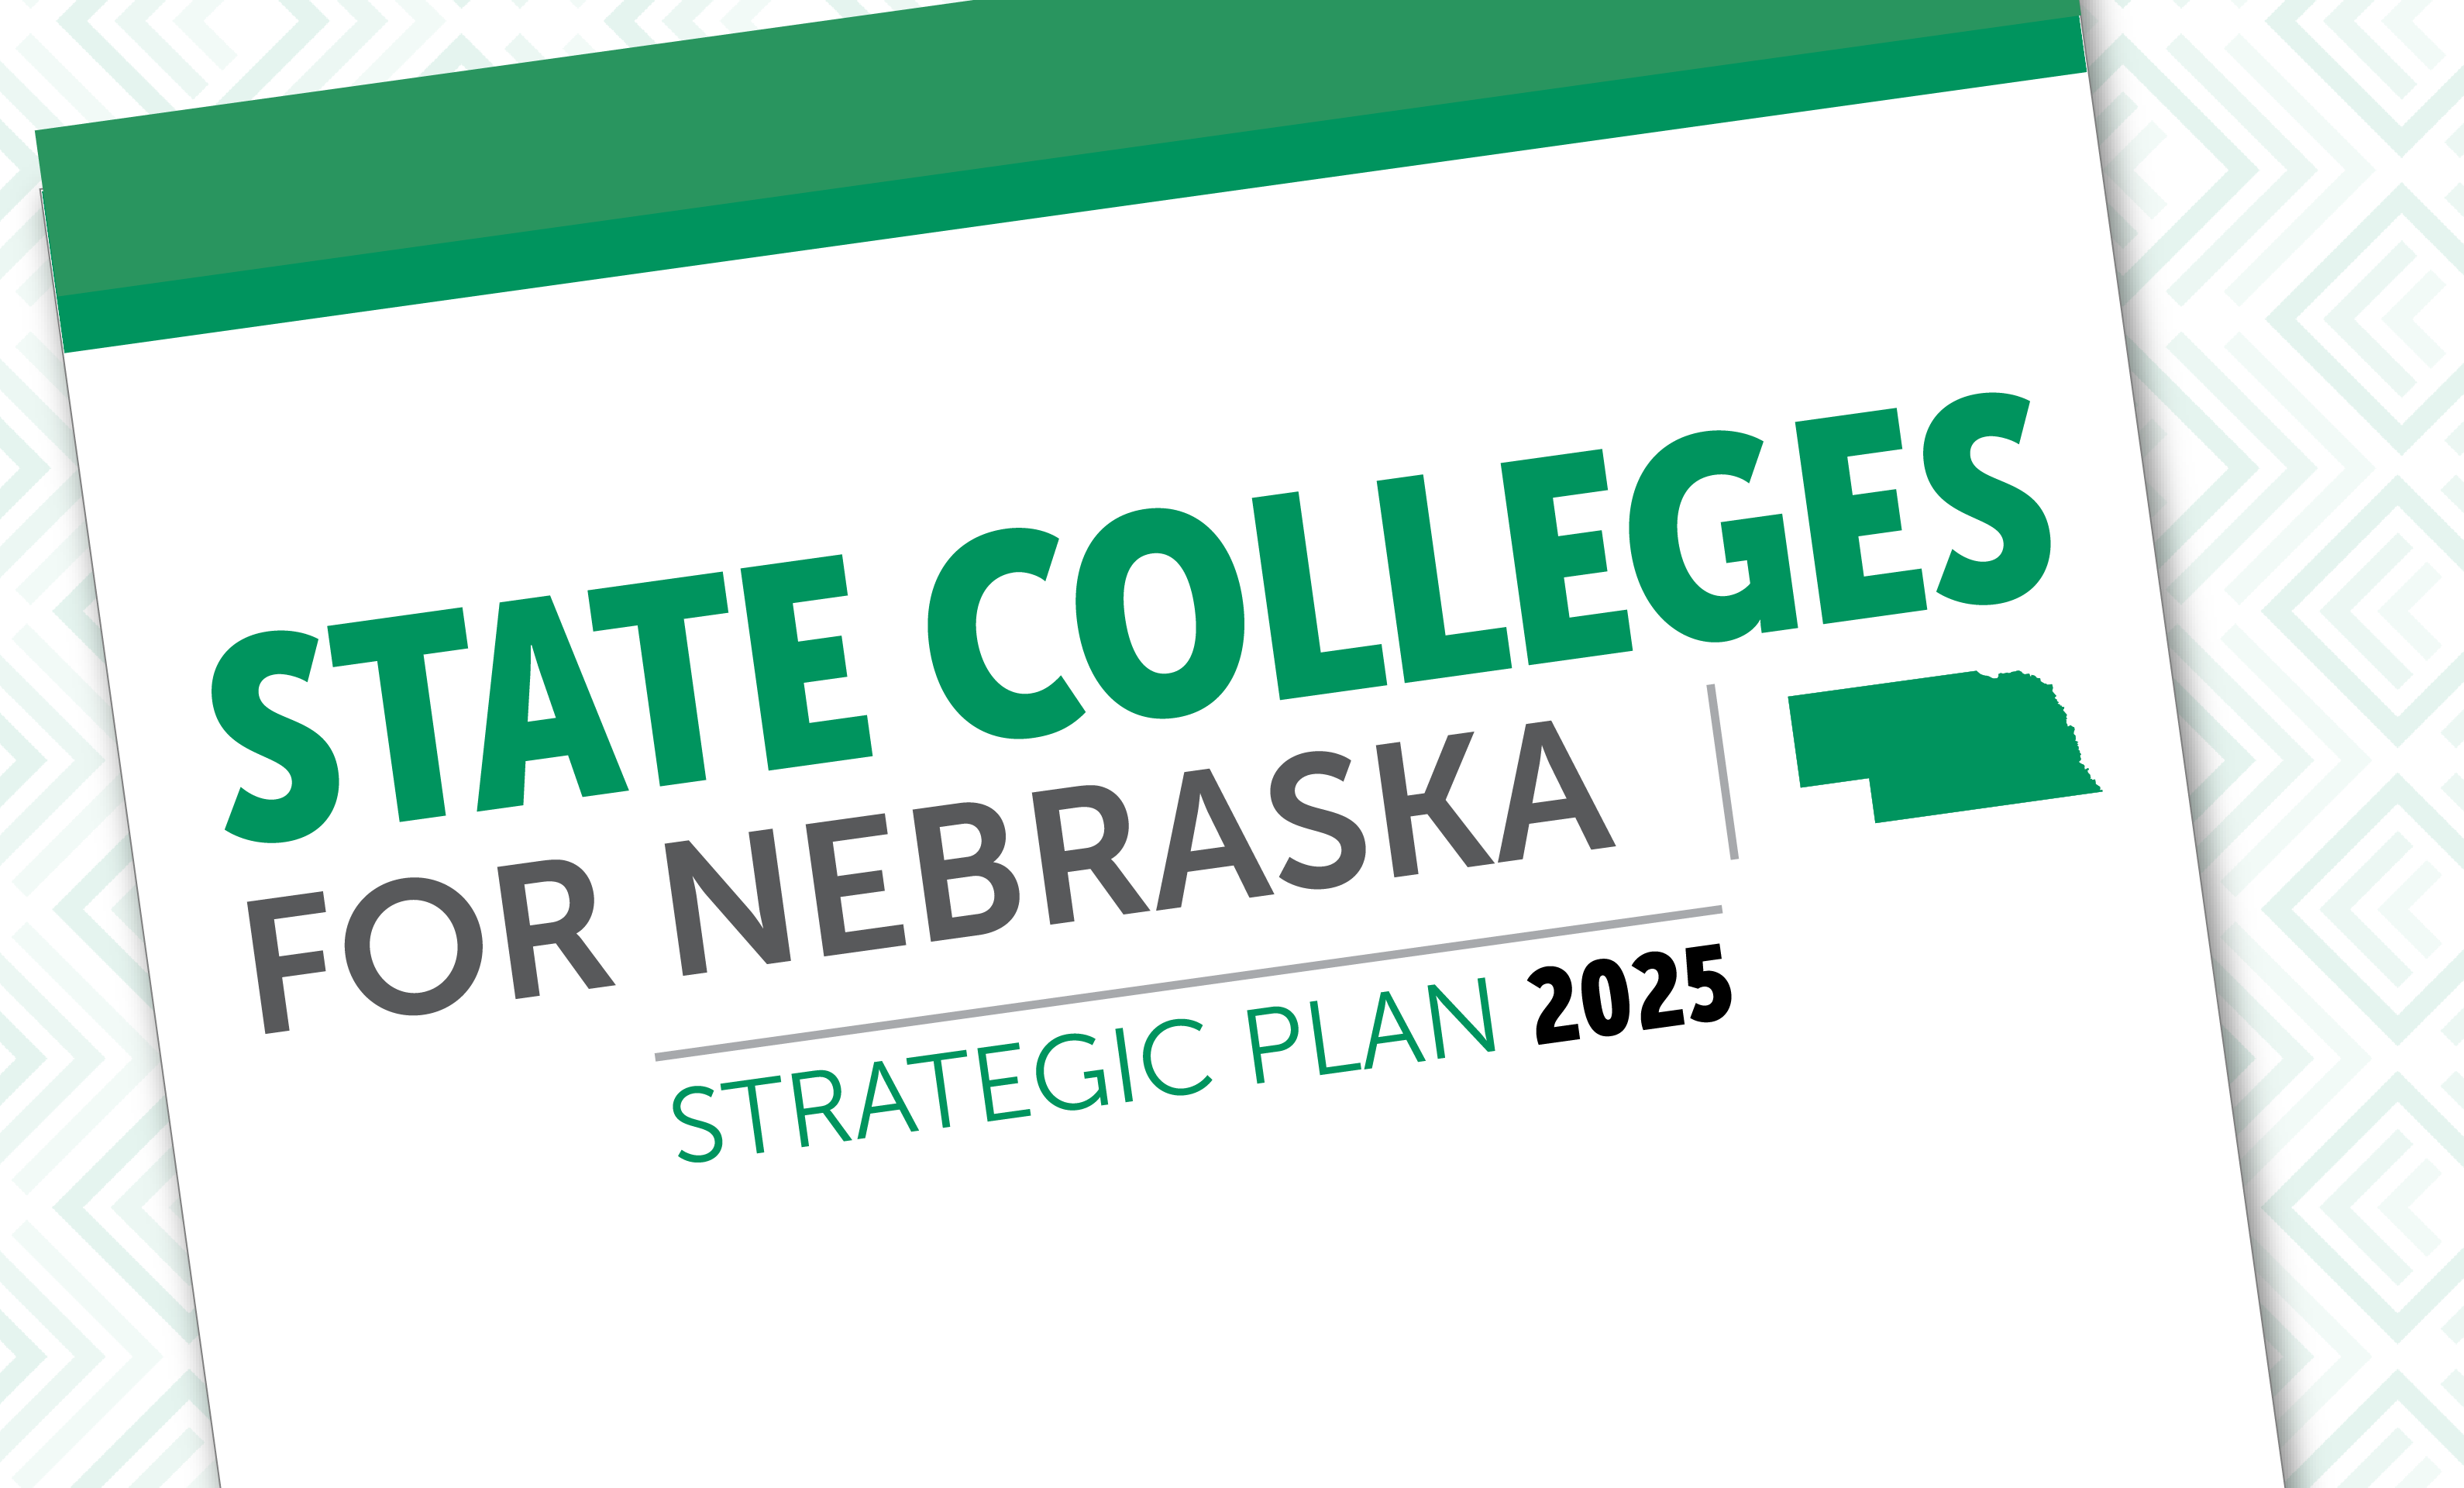 State Colleges for Nebraska